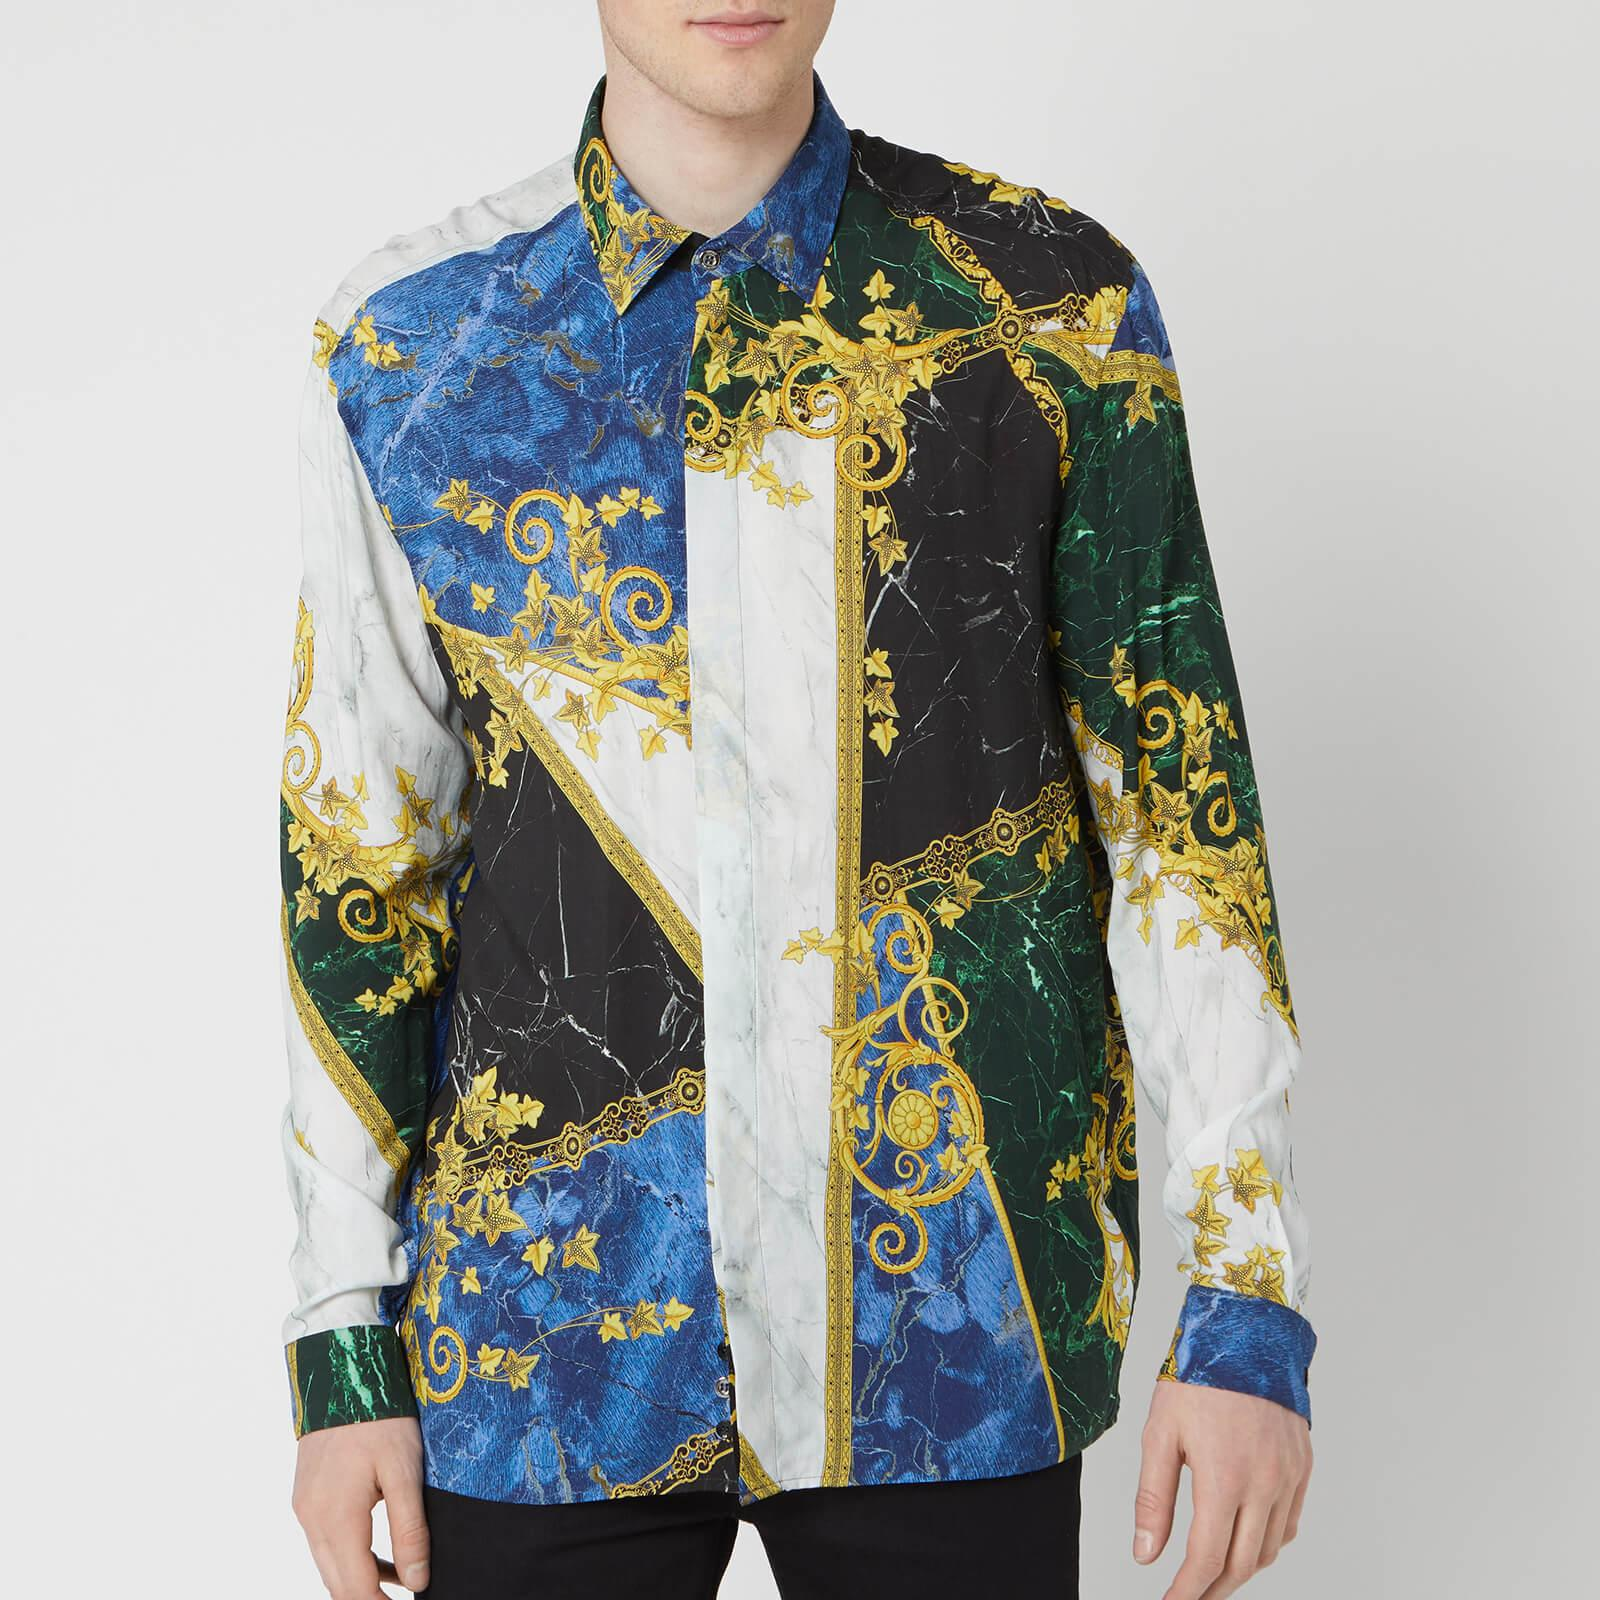 16ae43aff Lyst - Versace Shirt in Blue for Men